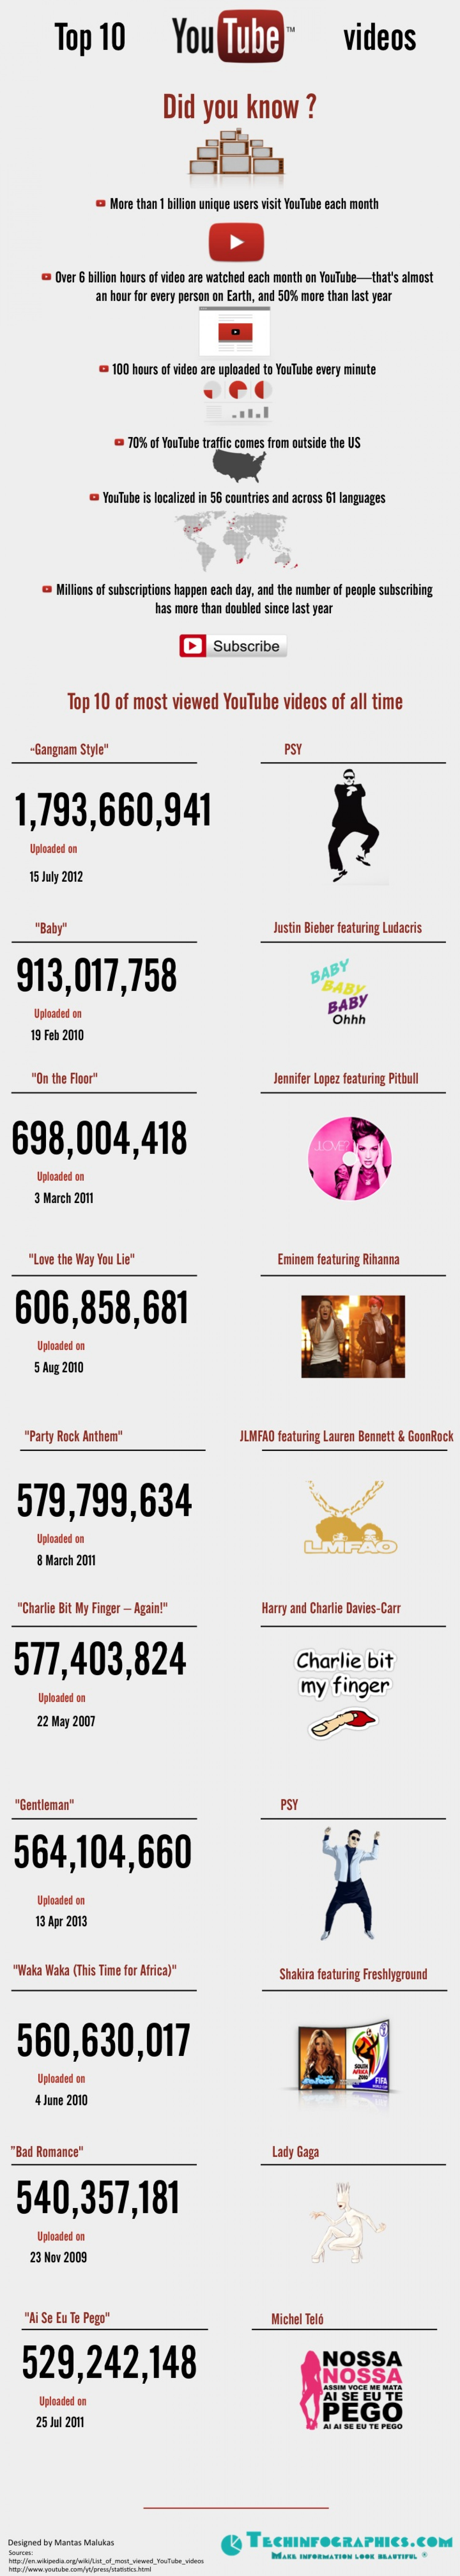 Top 10 Youtube Videos Infographic